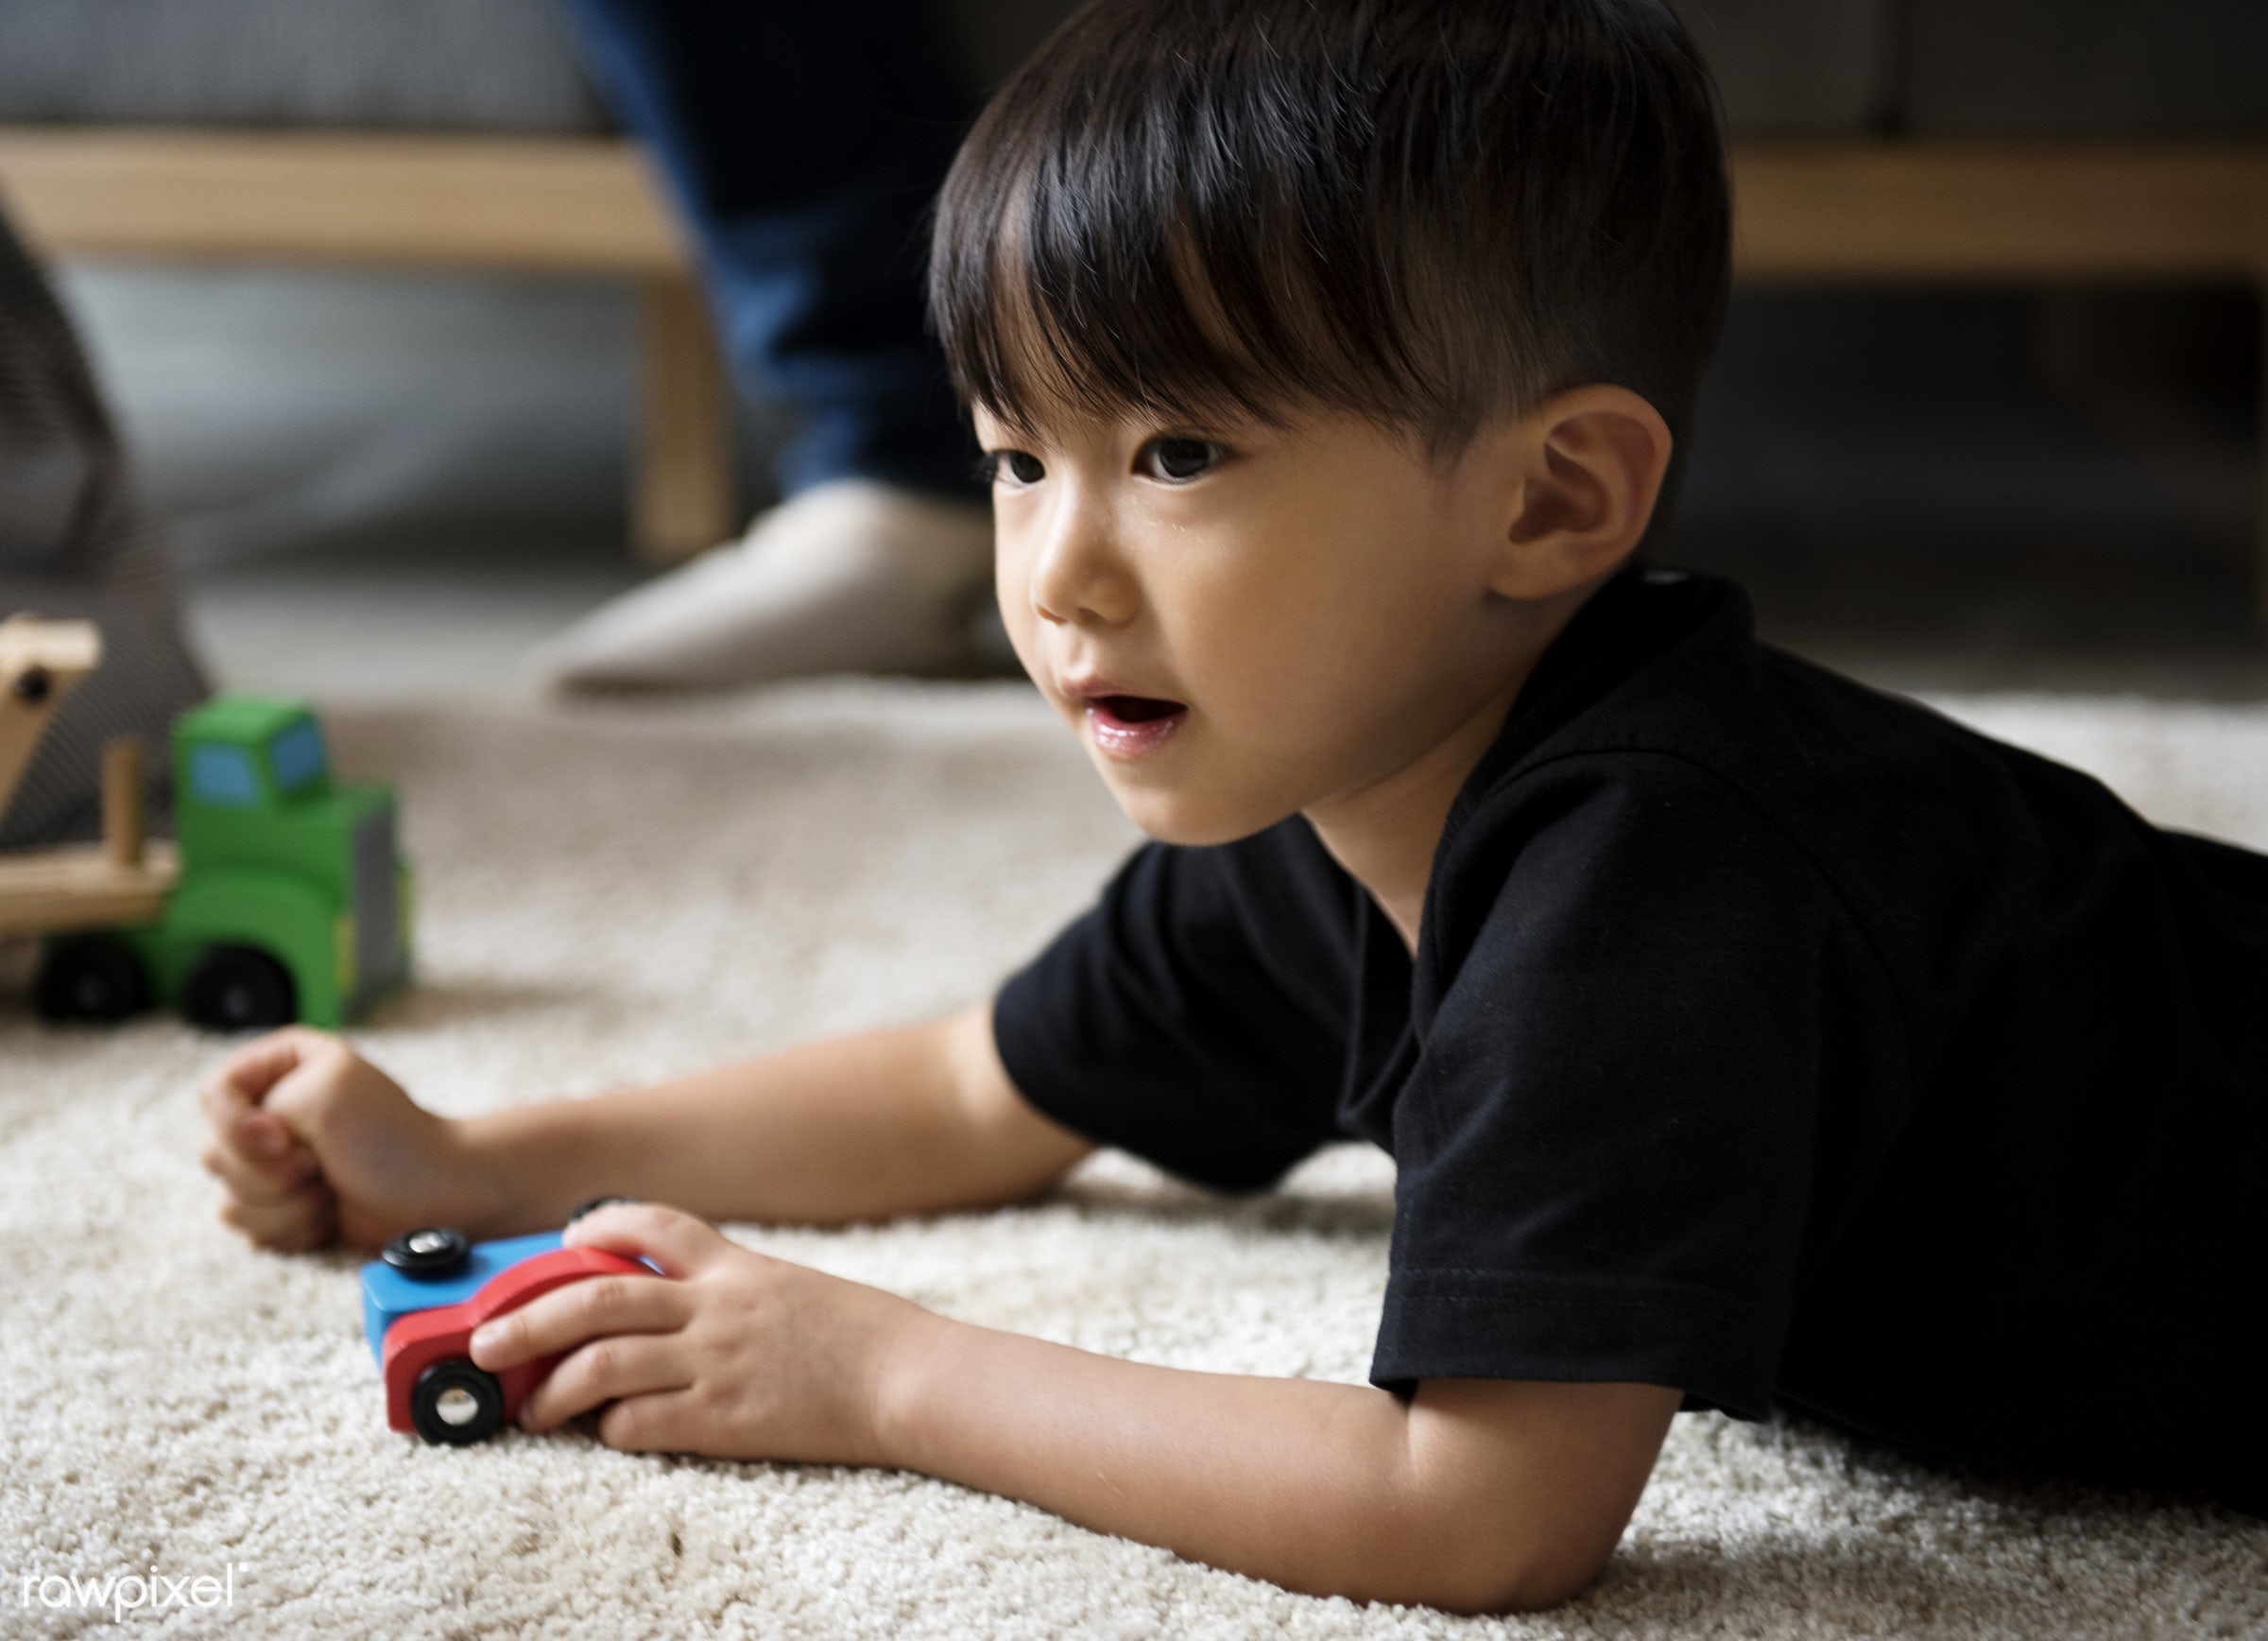 adorable, asian, boy, candid, casual, child, elementary age, imagination, innocence, kid, learning, leisure, one person,...